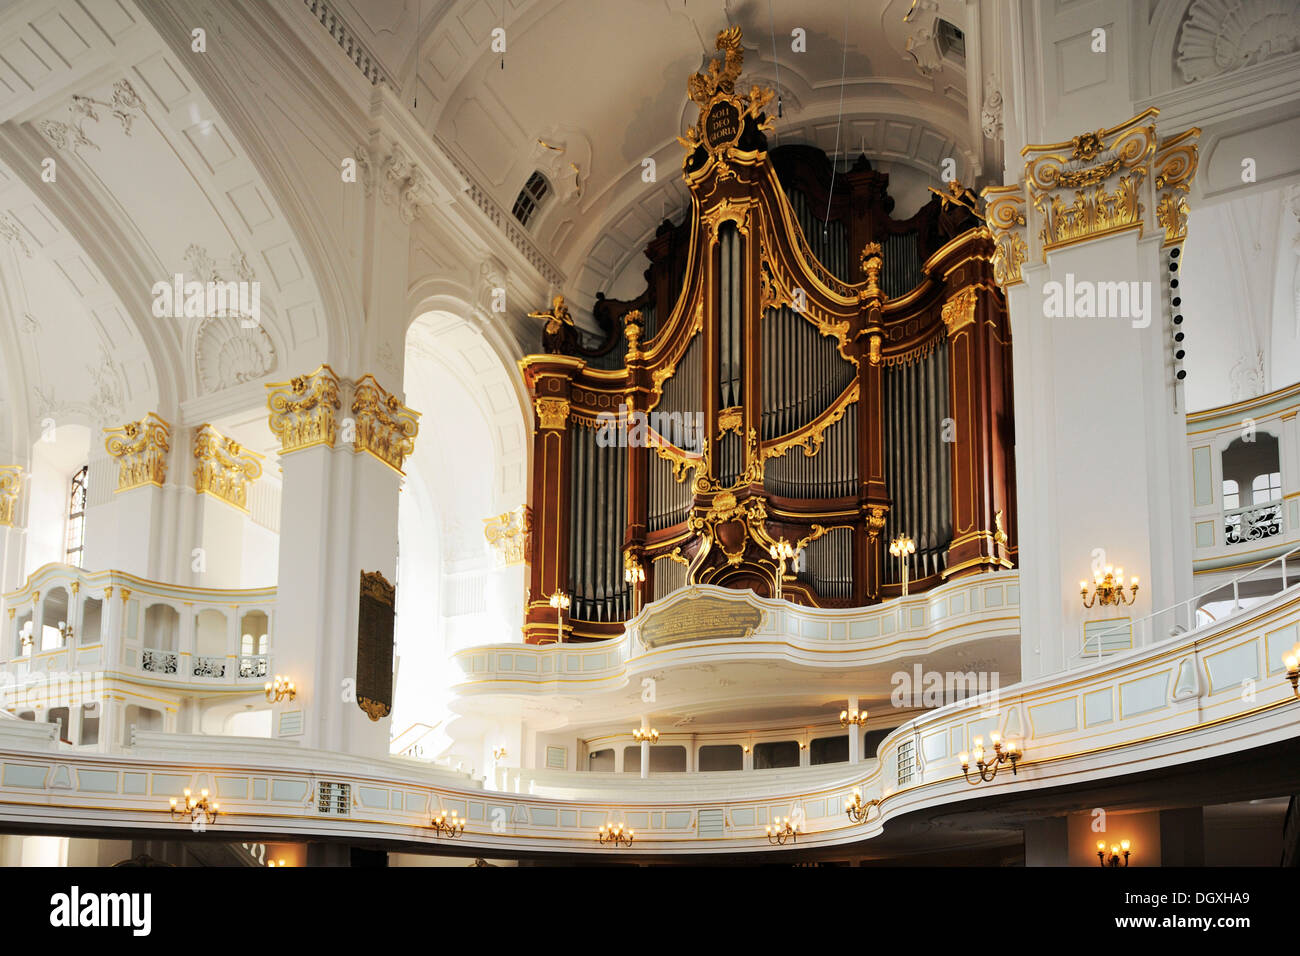 Interior view of the baroque St. Michaelis Church with organ, Hamburg - Stock Image